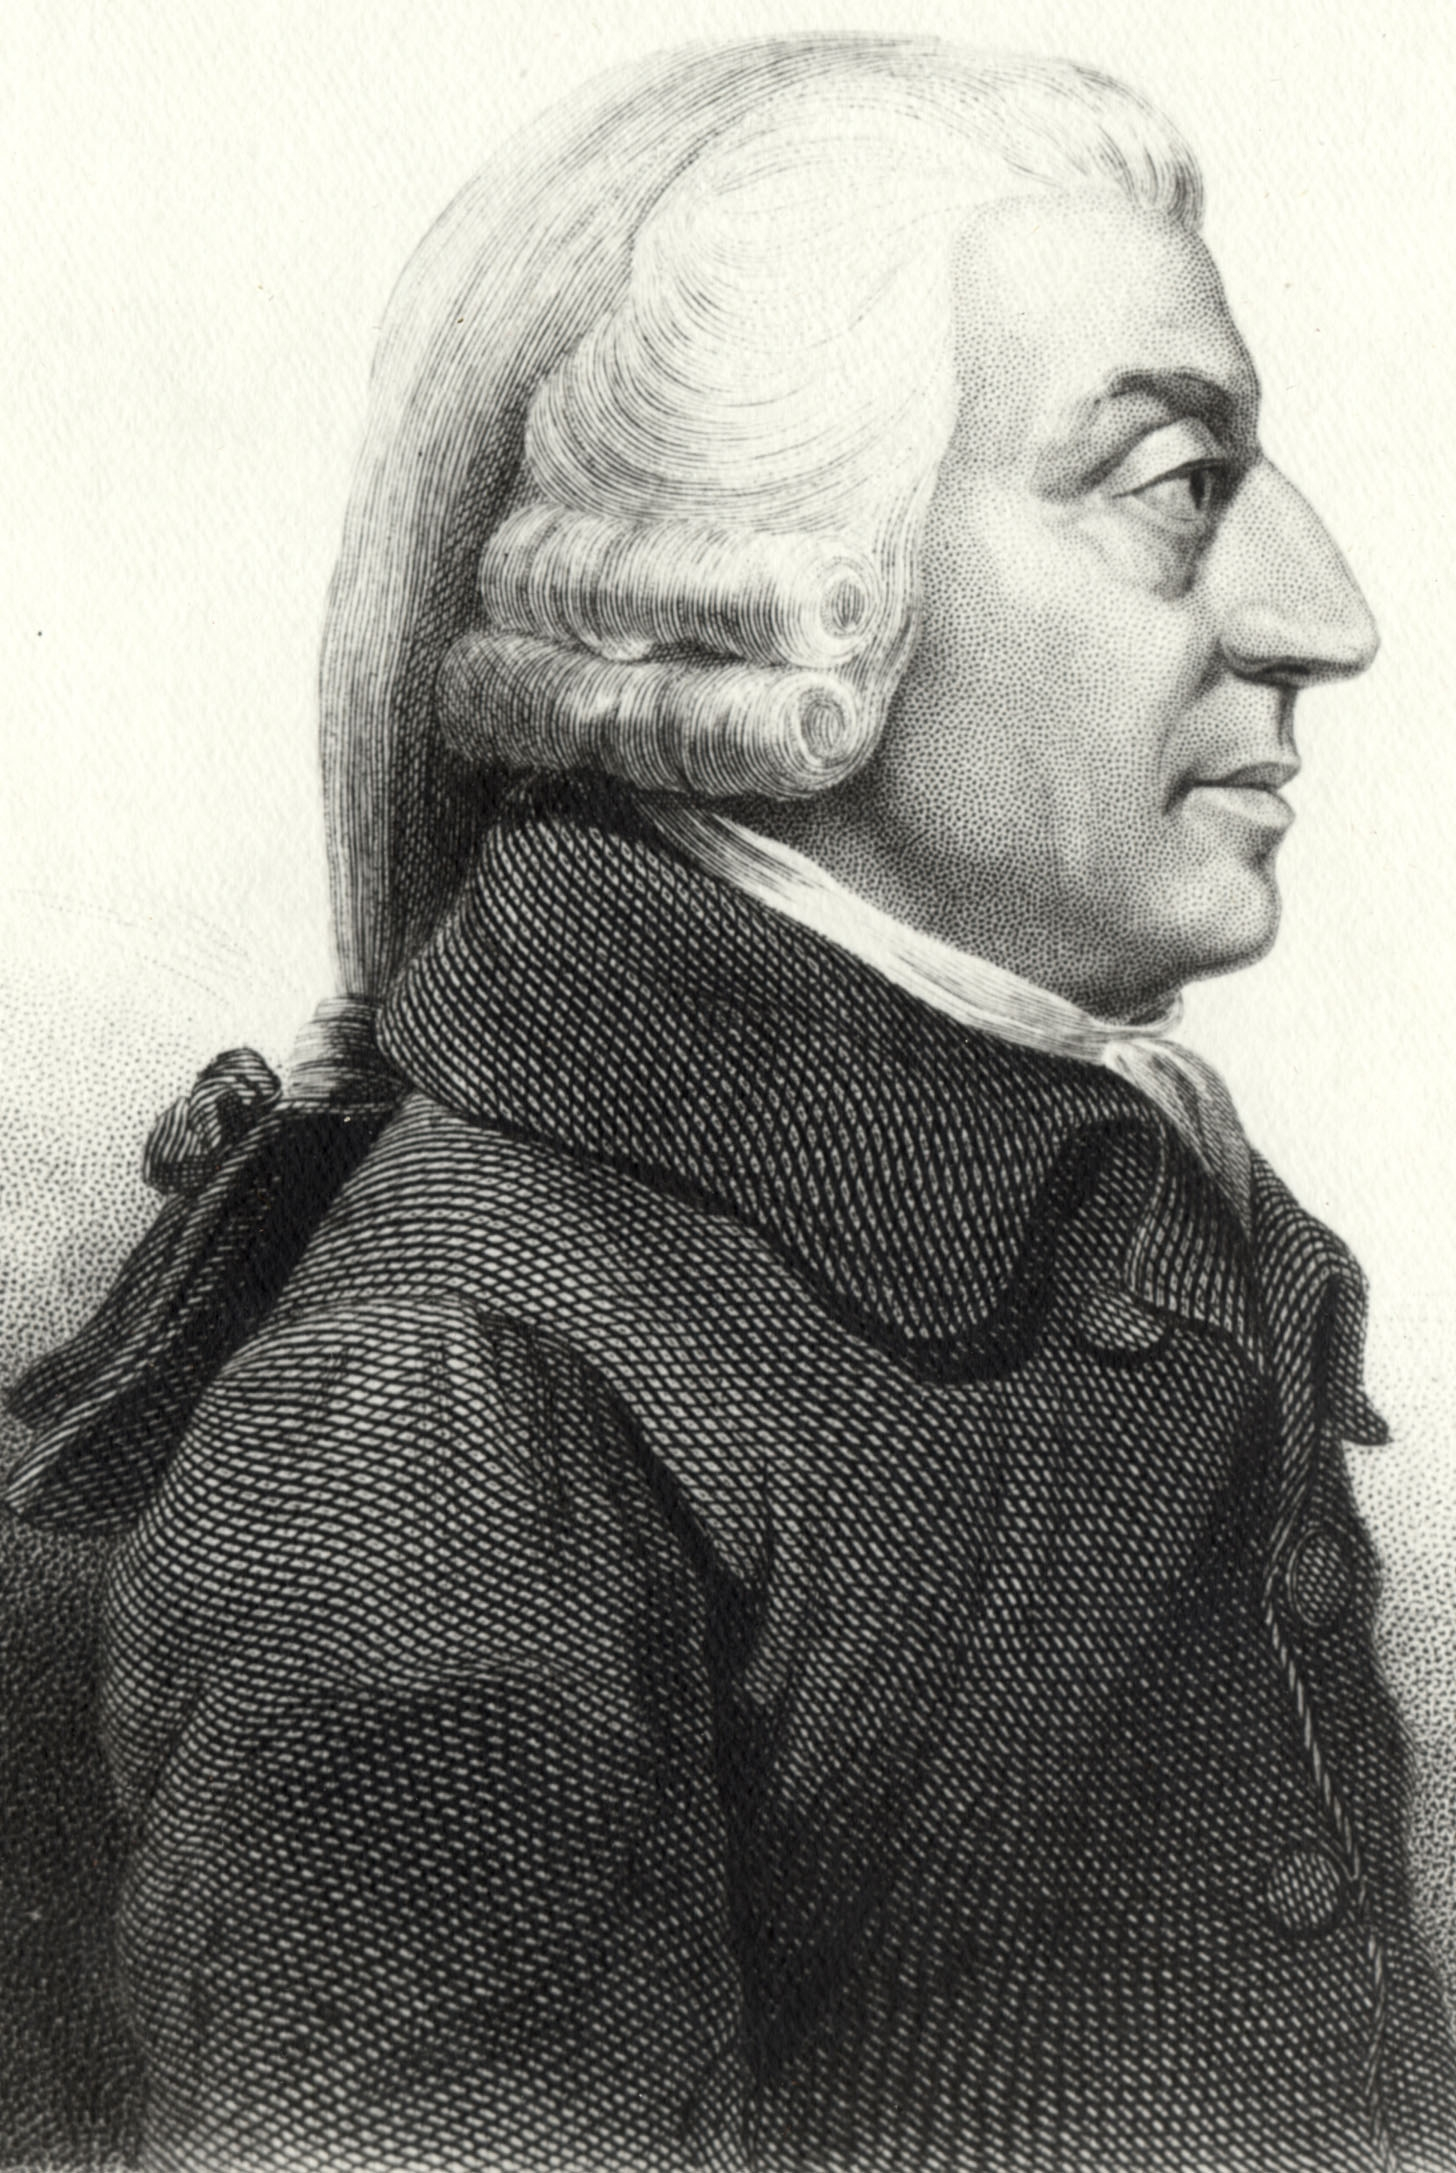 Profil de Adam Smith (1787).